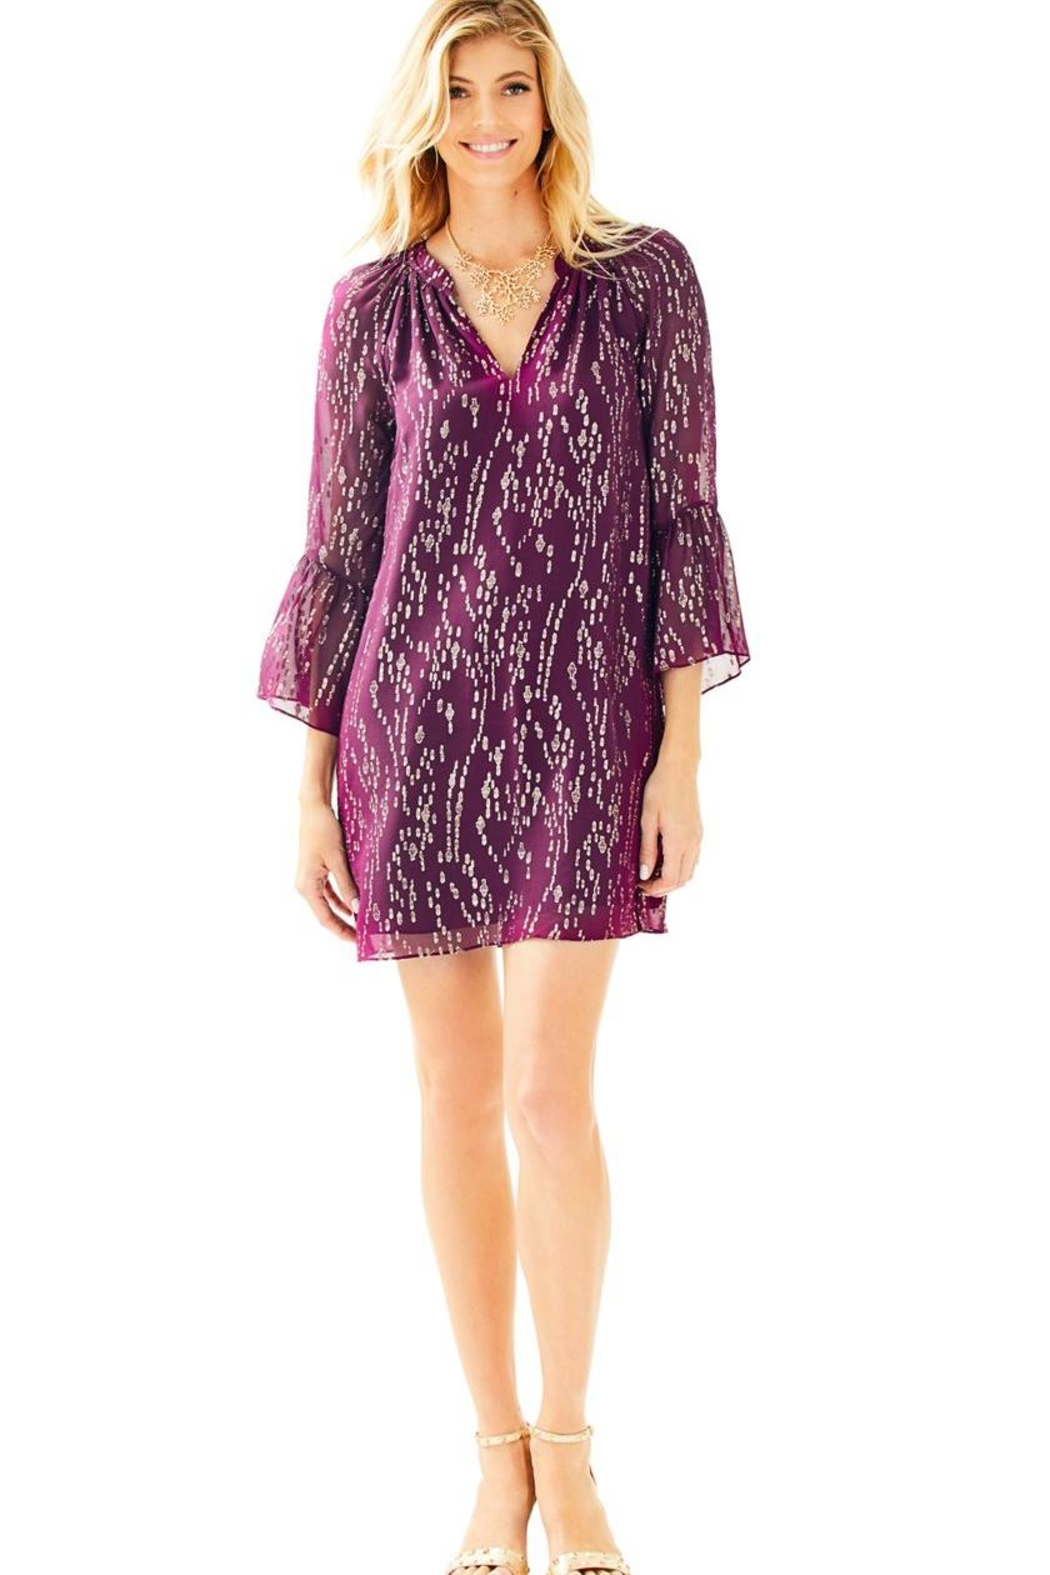 Lilly Pulitzer Matilda Silk Dress - Main Image